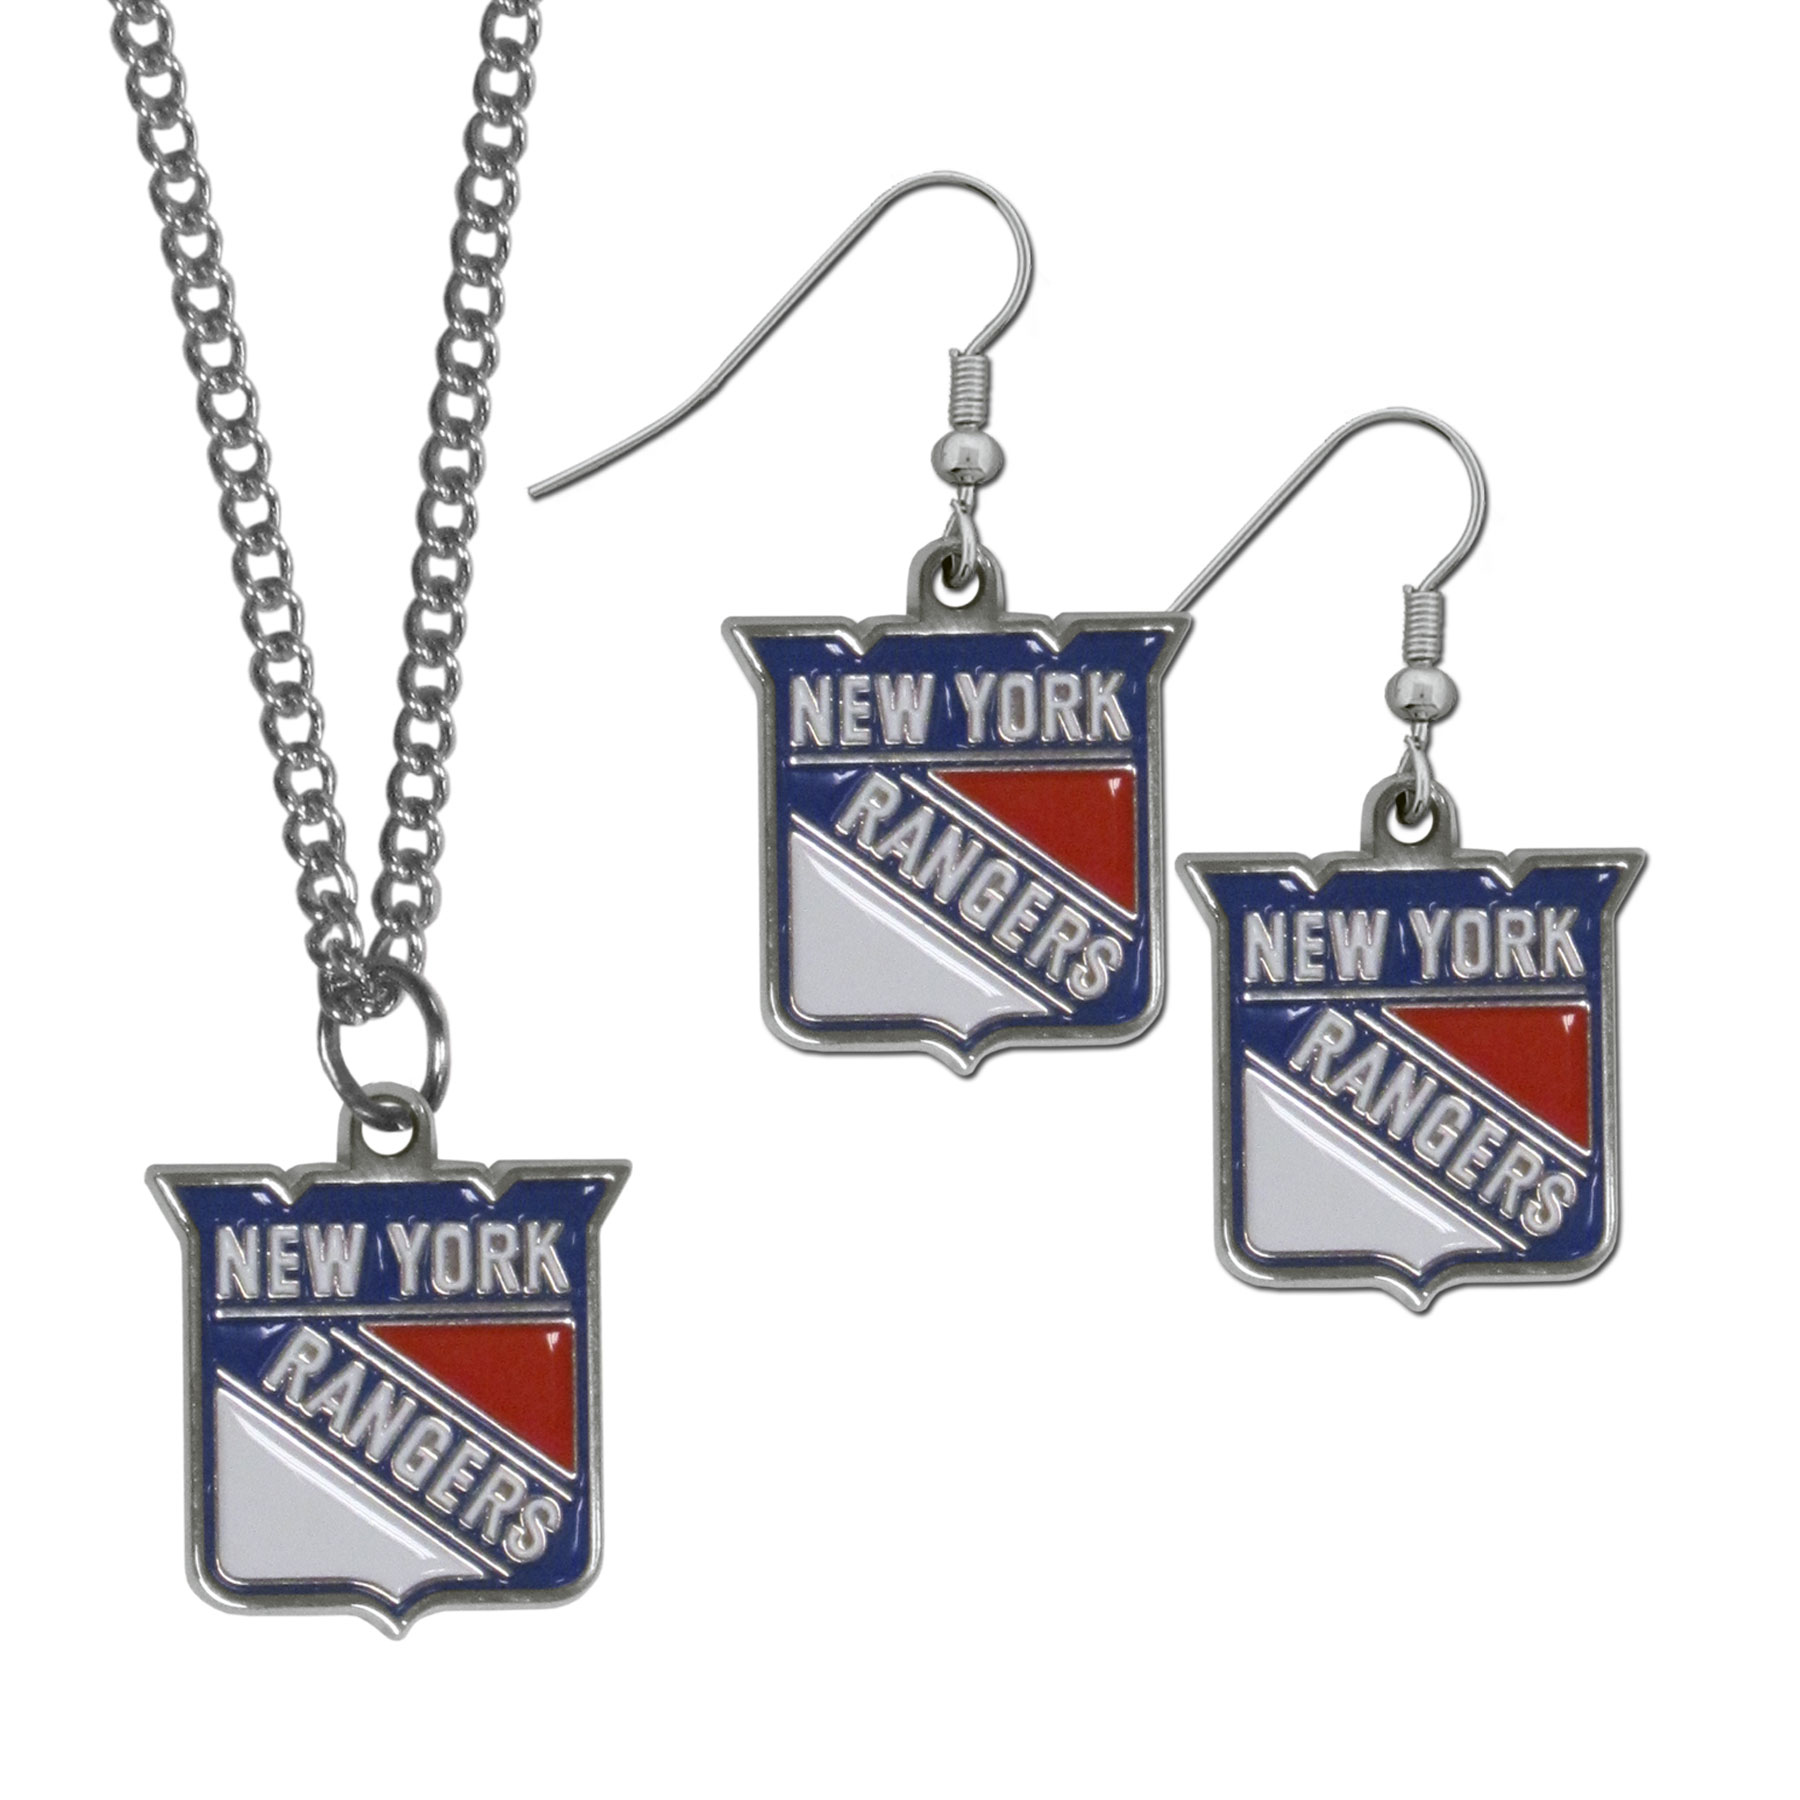 New York Rangers® Dangle Earrings and Chain Necklace Set - This classic jewelry set contains are most popular New York Rangers® dangle earrings and 22 inch chain necklace. The trendy, dangle earrings are lightweight and feature a fully cast metal team charm with enameled team colors. The matching necklace completes this fashion forward combo and is a spirited set that is perfect for game day but nice enough for everyday.